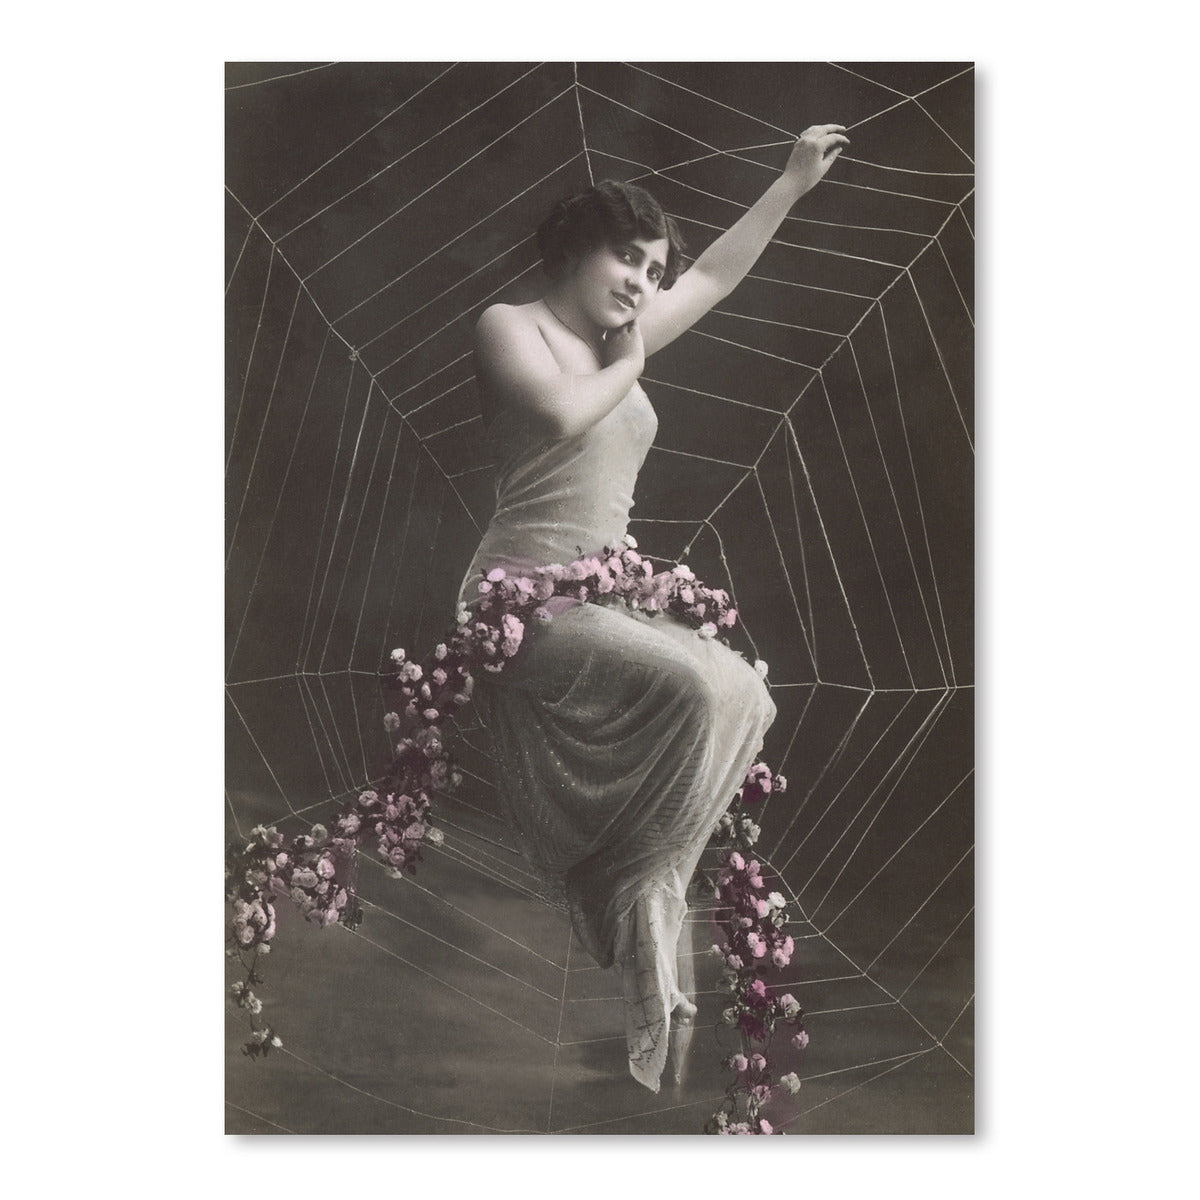 Woman In Spider Web by Found Image Press Art Print - Art Print - Americanflat